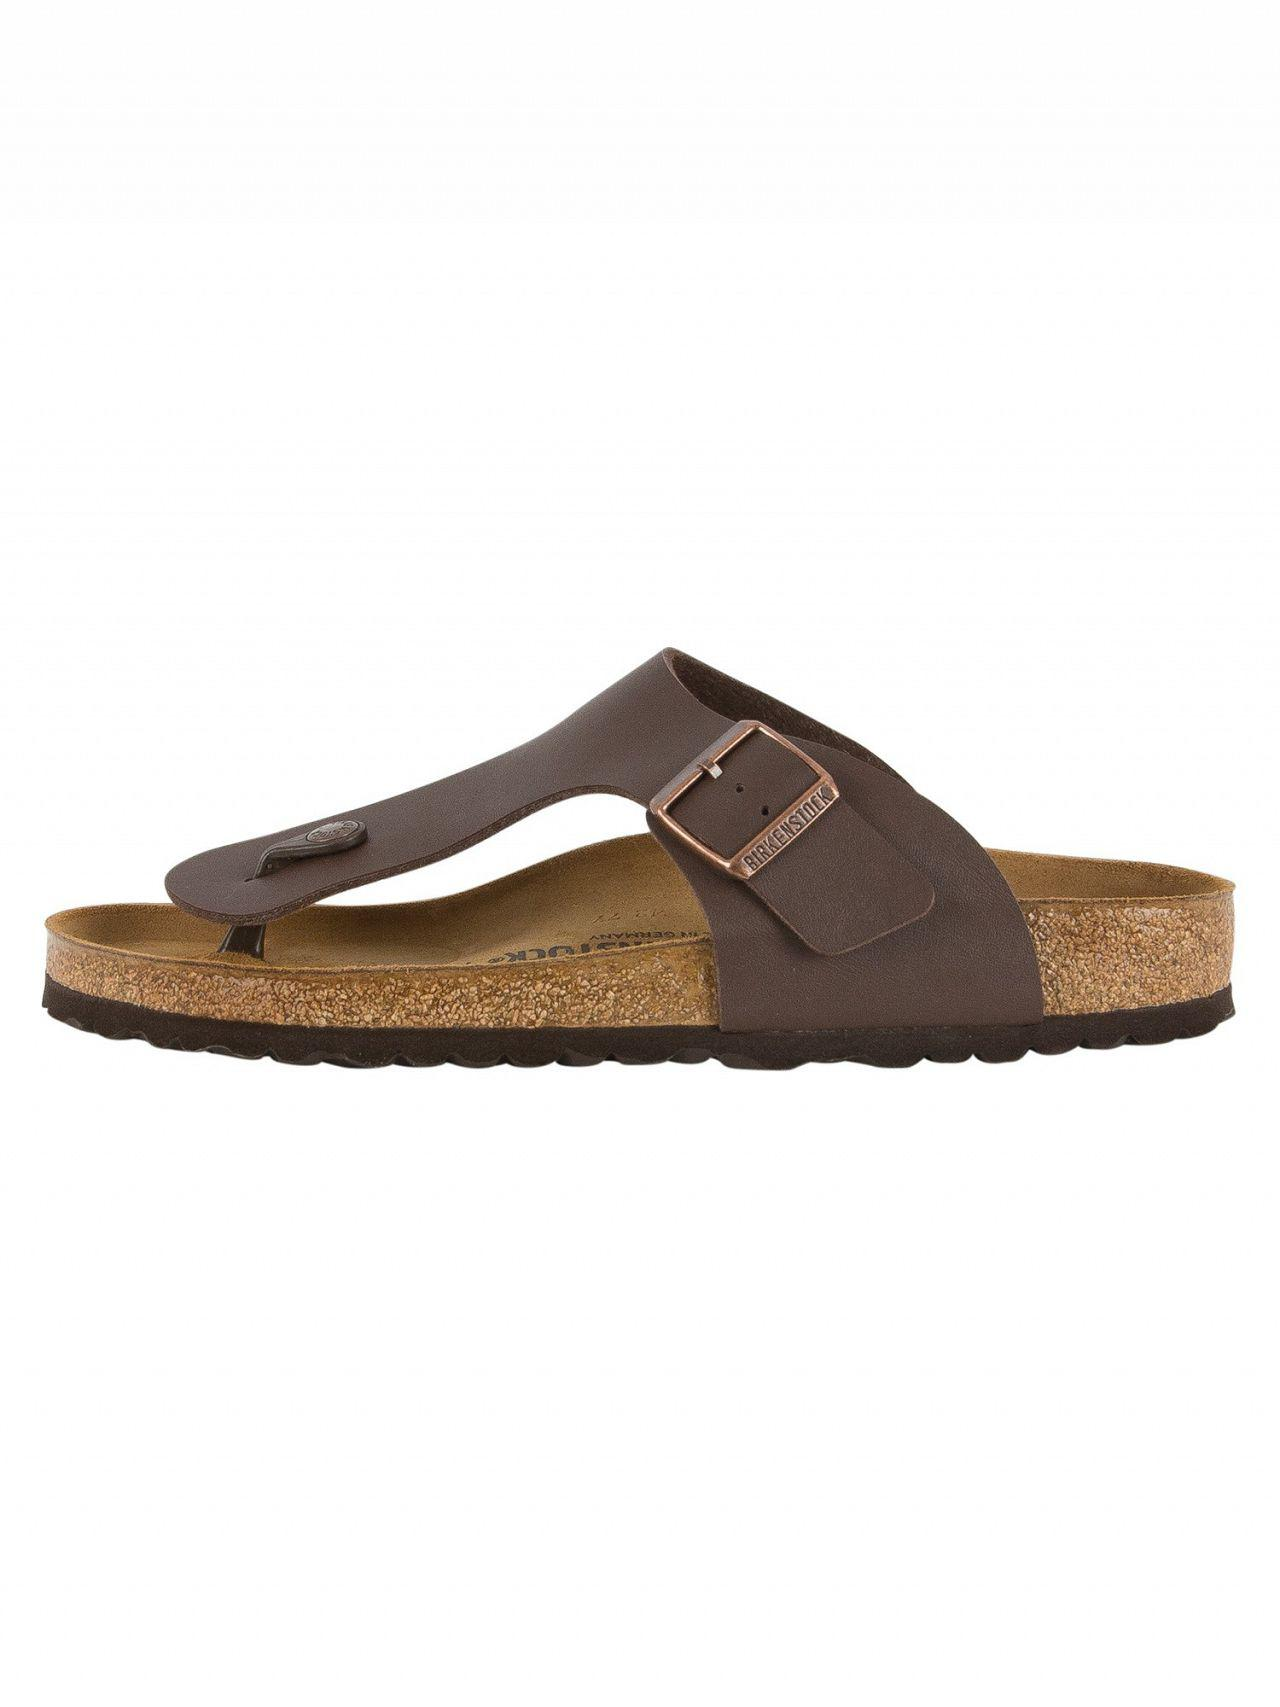 c2059b9e184 Birkenstock Dark Brown Ramses Bs Sandals in Brown for Men - Lyst